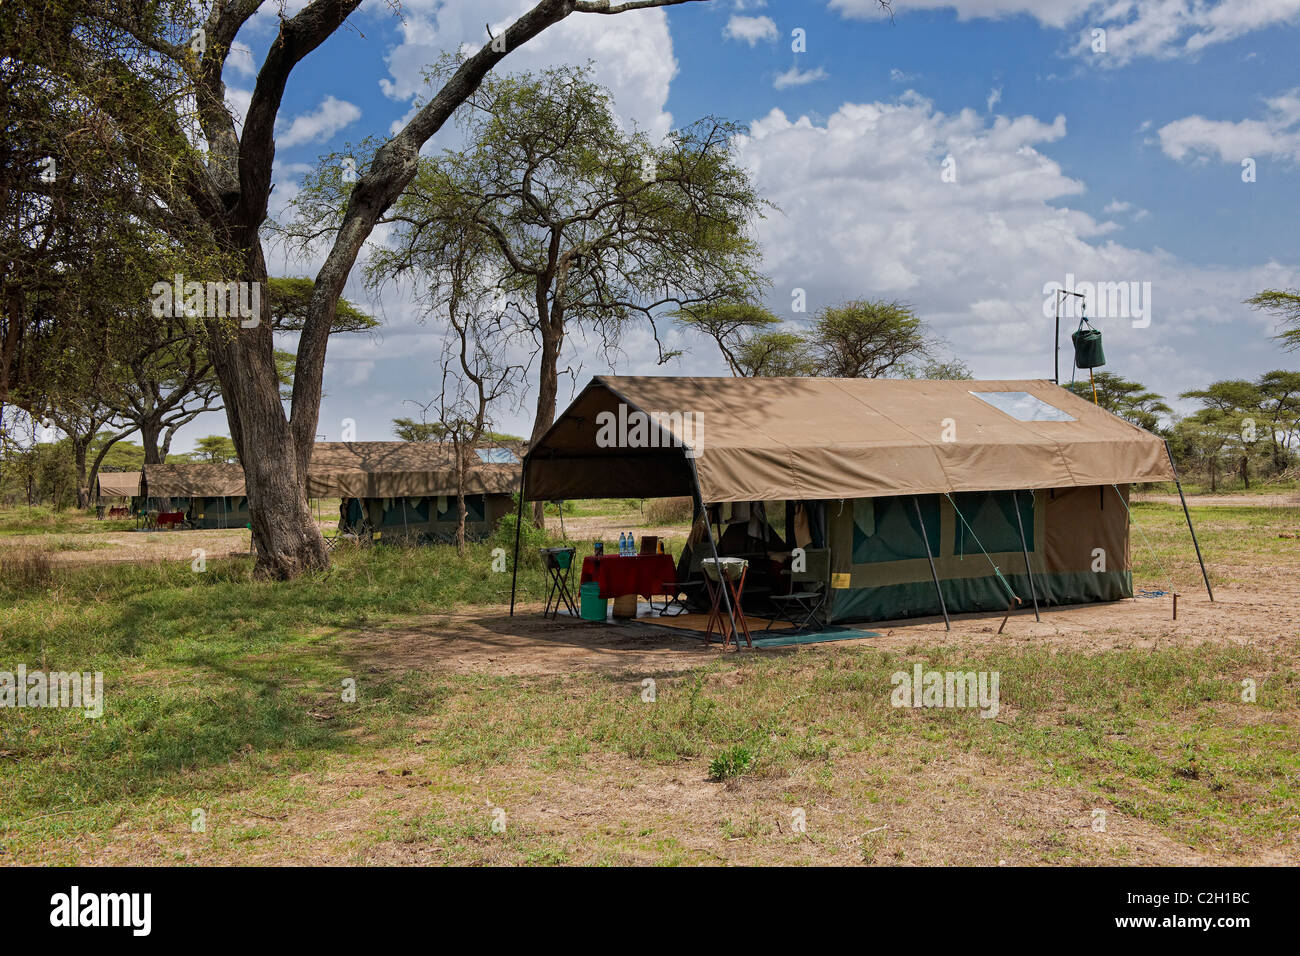 tents in wilderness of Luxury Mobile Safari Tended Camp, Serengeti, Tanzania, Africa - Stock Image